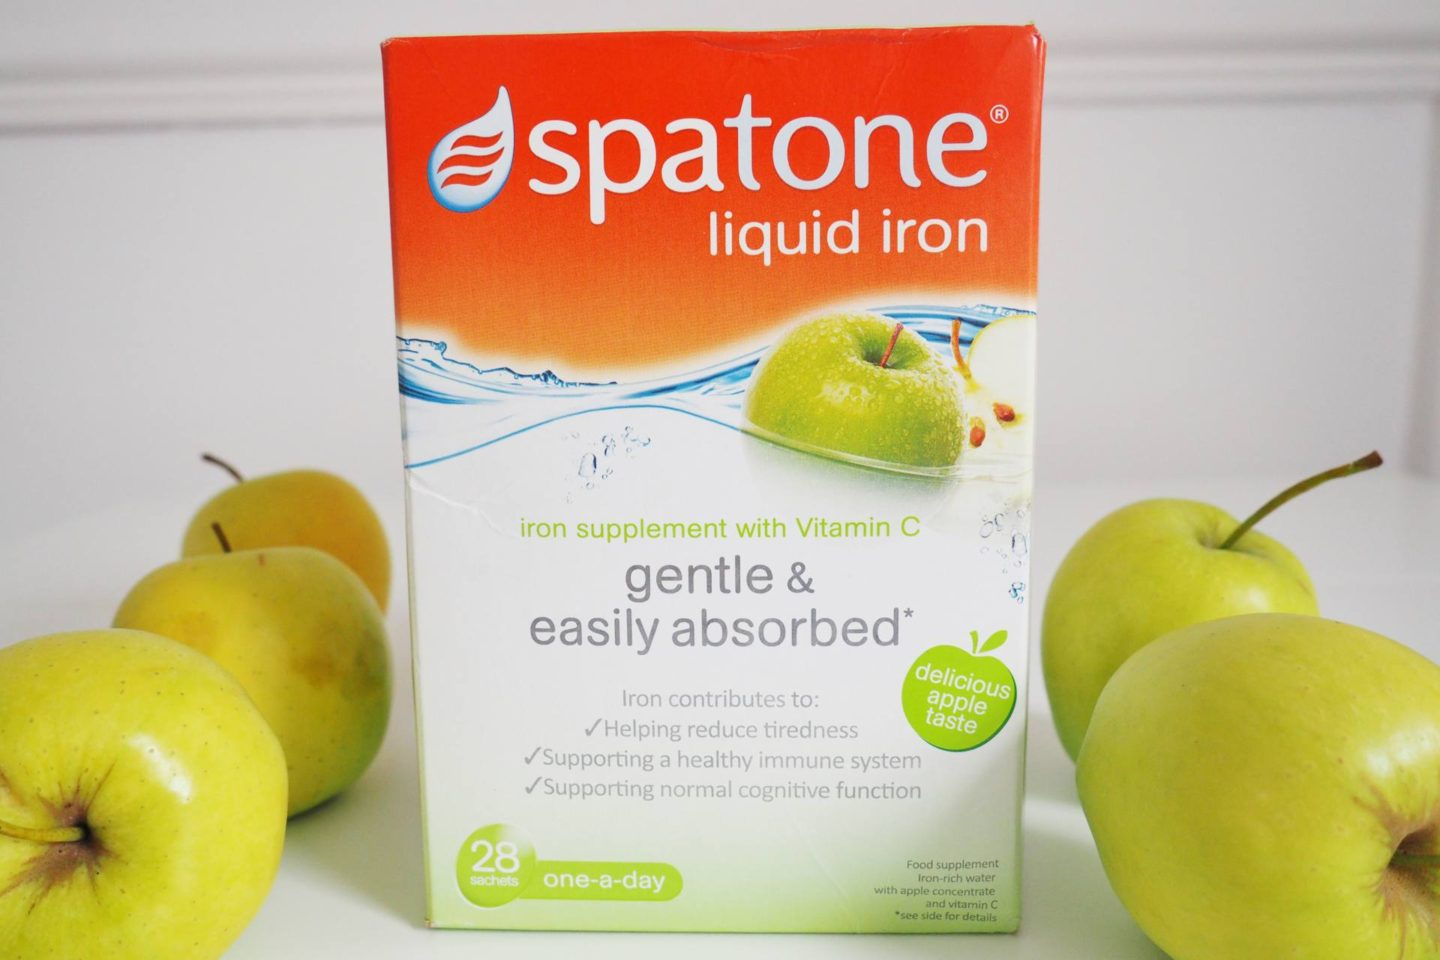 Shaking Up My Daily Food Intake With Spatone - Emma Victoria